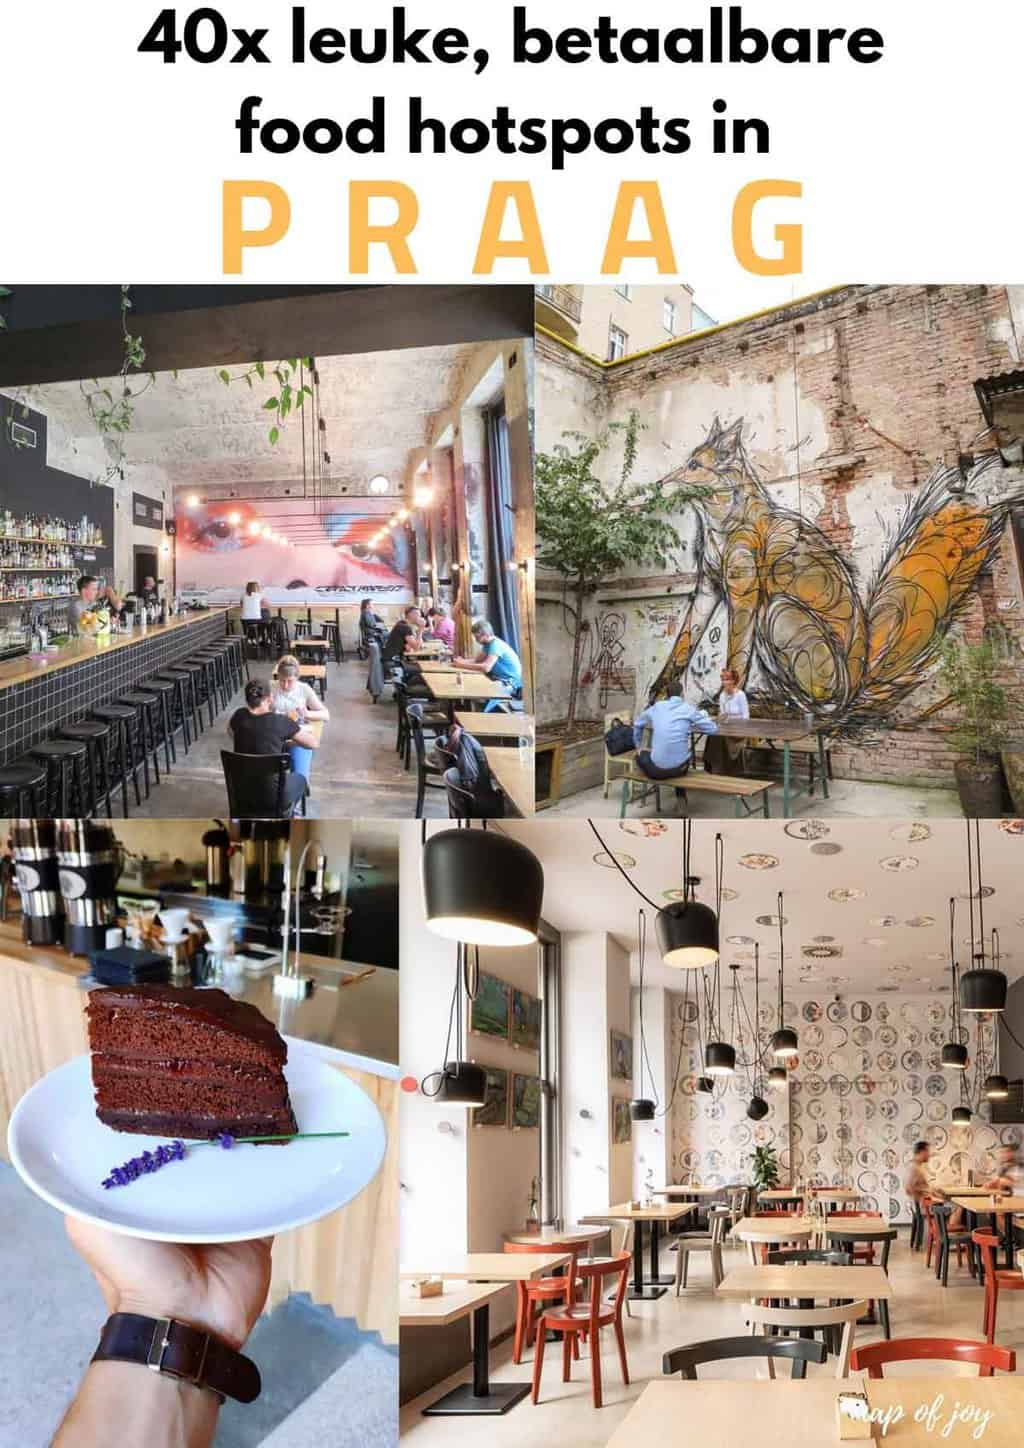 40x leuke, betaalbare food hotspots in Praag - Map of Joy